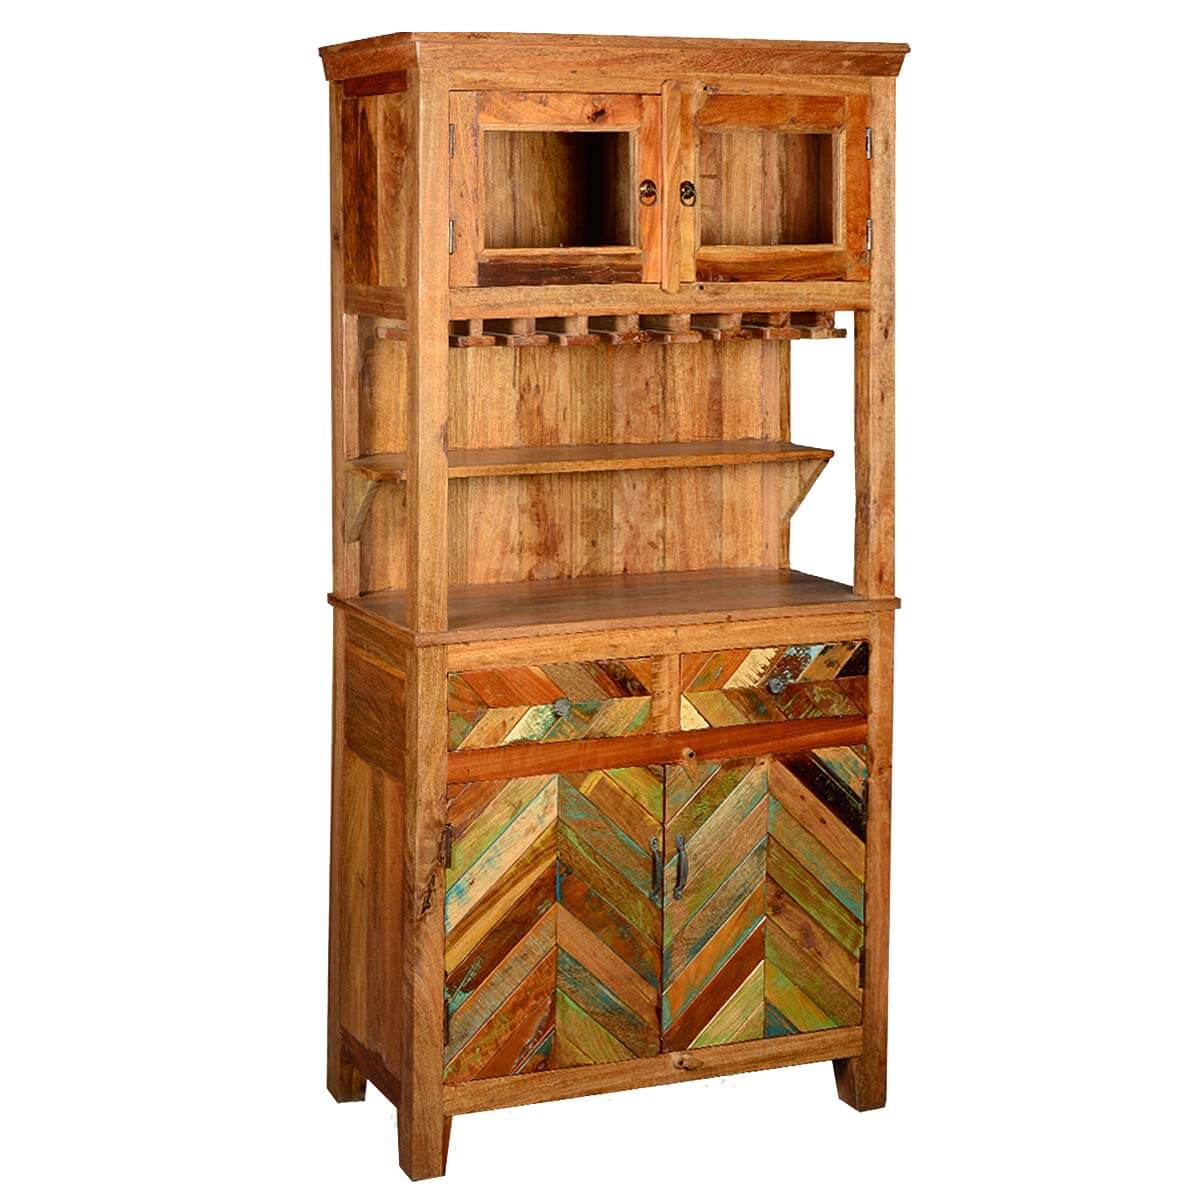 Rustic Kitchen Hutch: Rustic Reclaimed Wood Wine Bar Hutch Sideboard With Glass